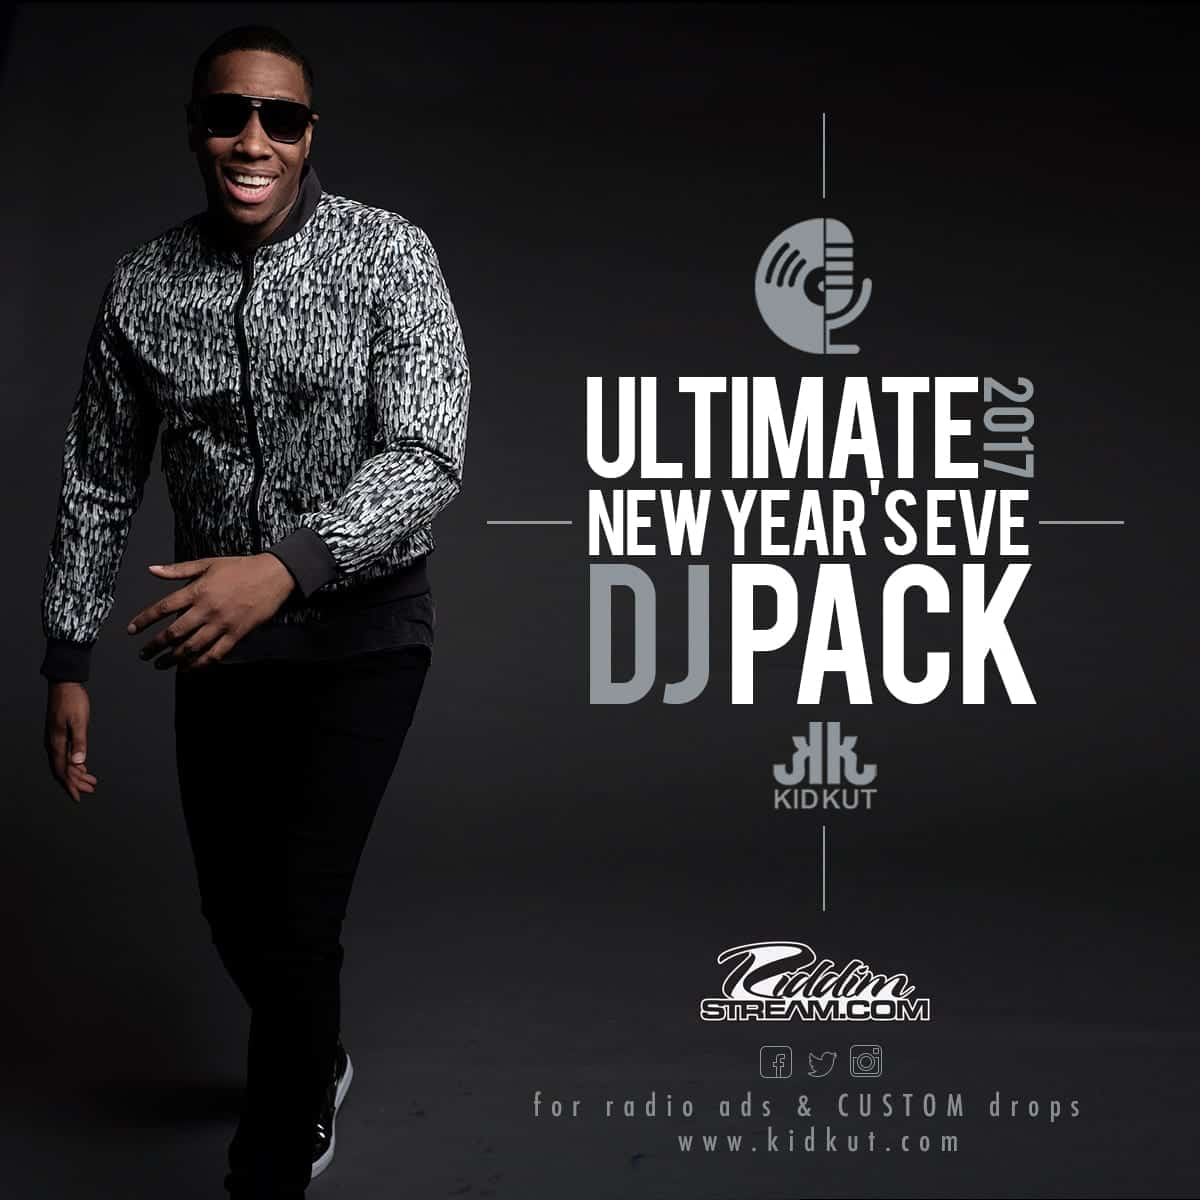 Kid Kut 2017 Ultimate New Years Eve Dj Pack